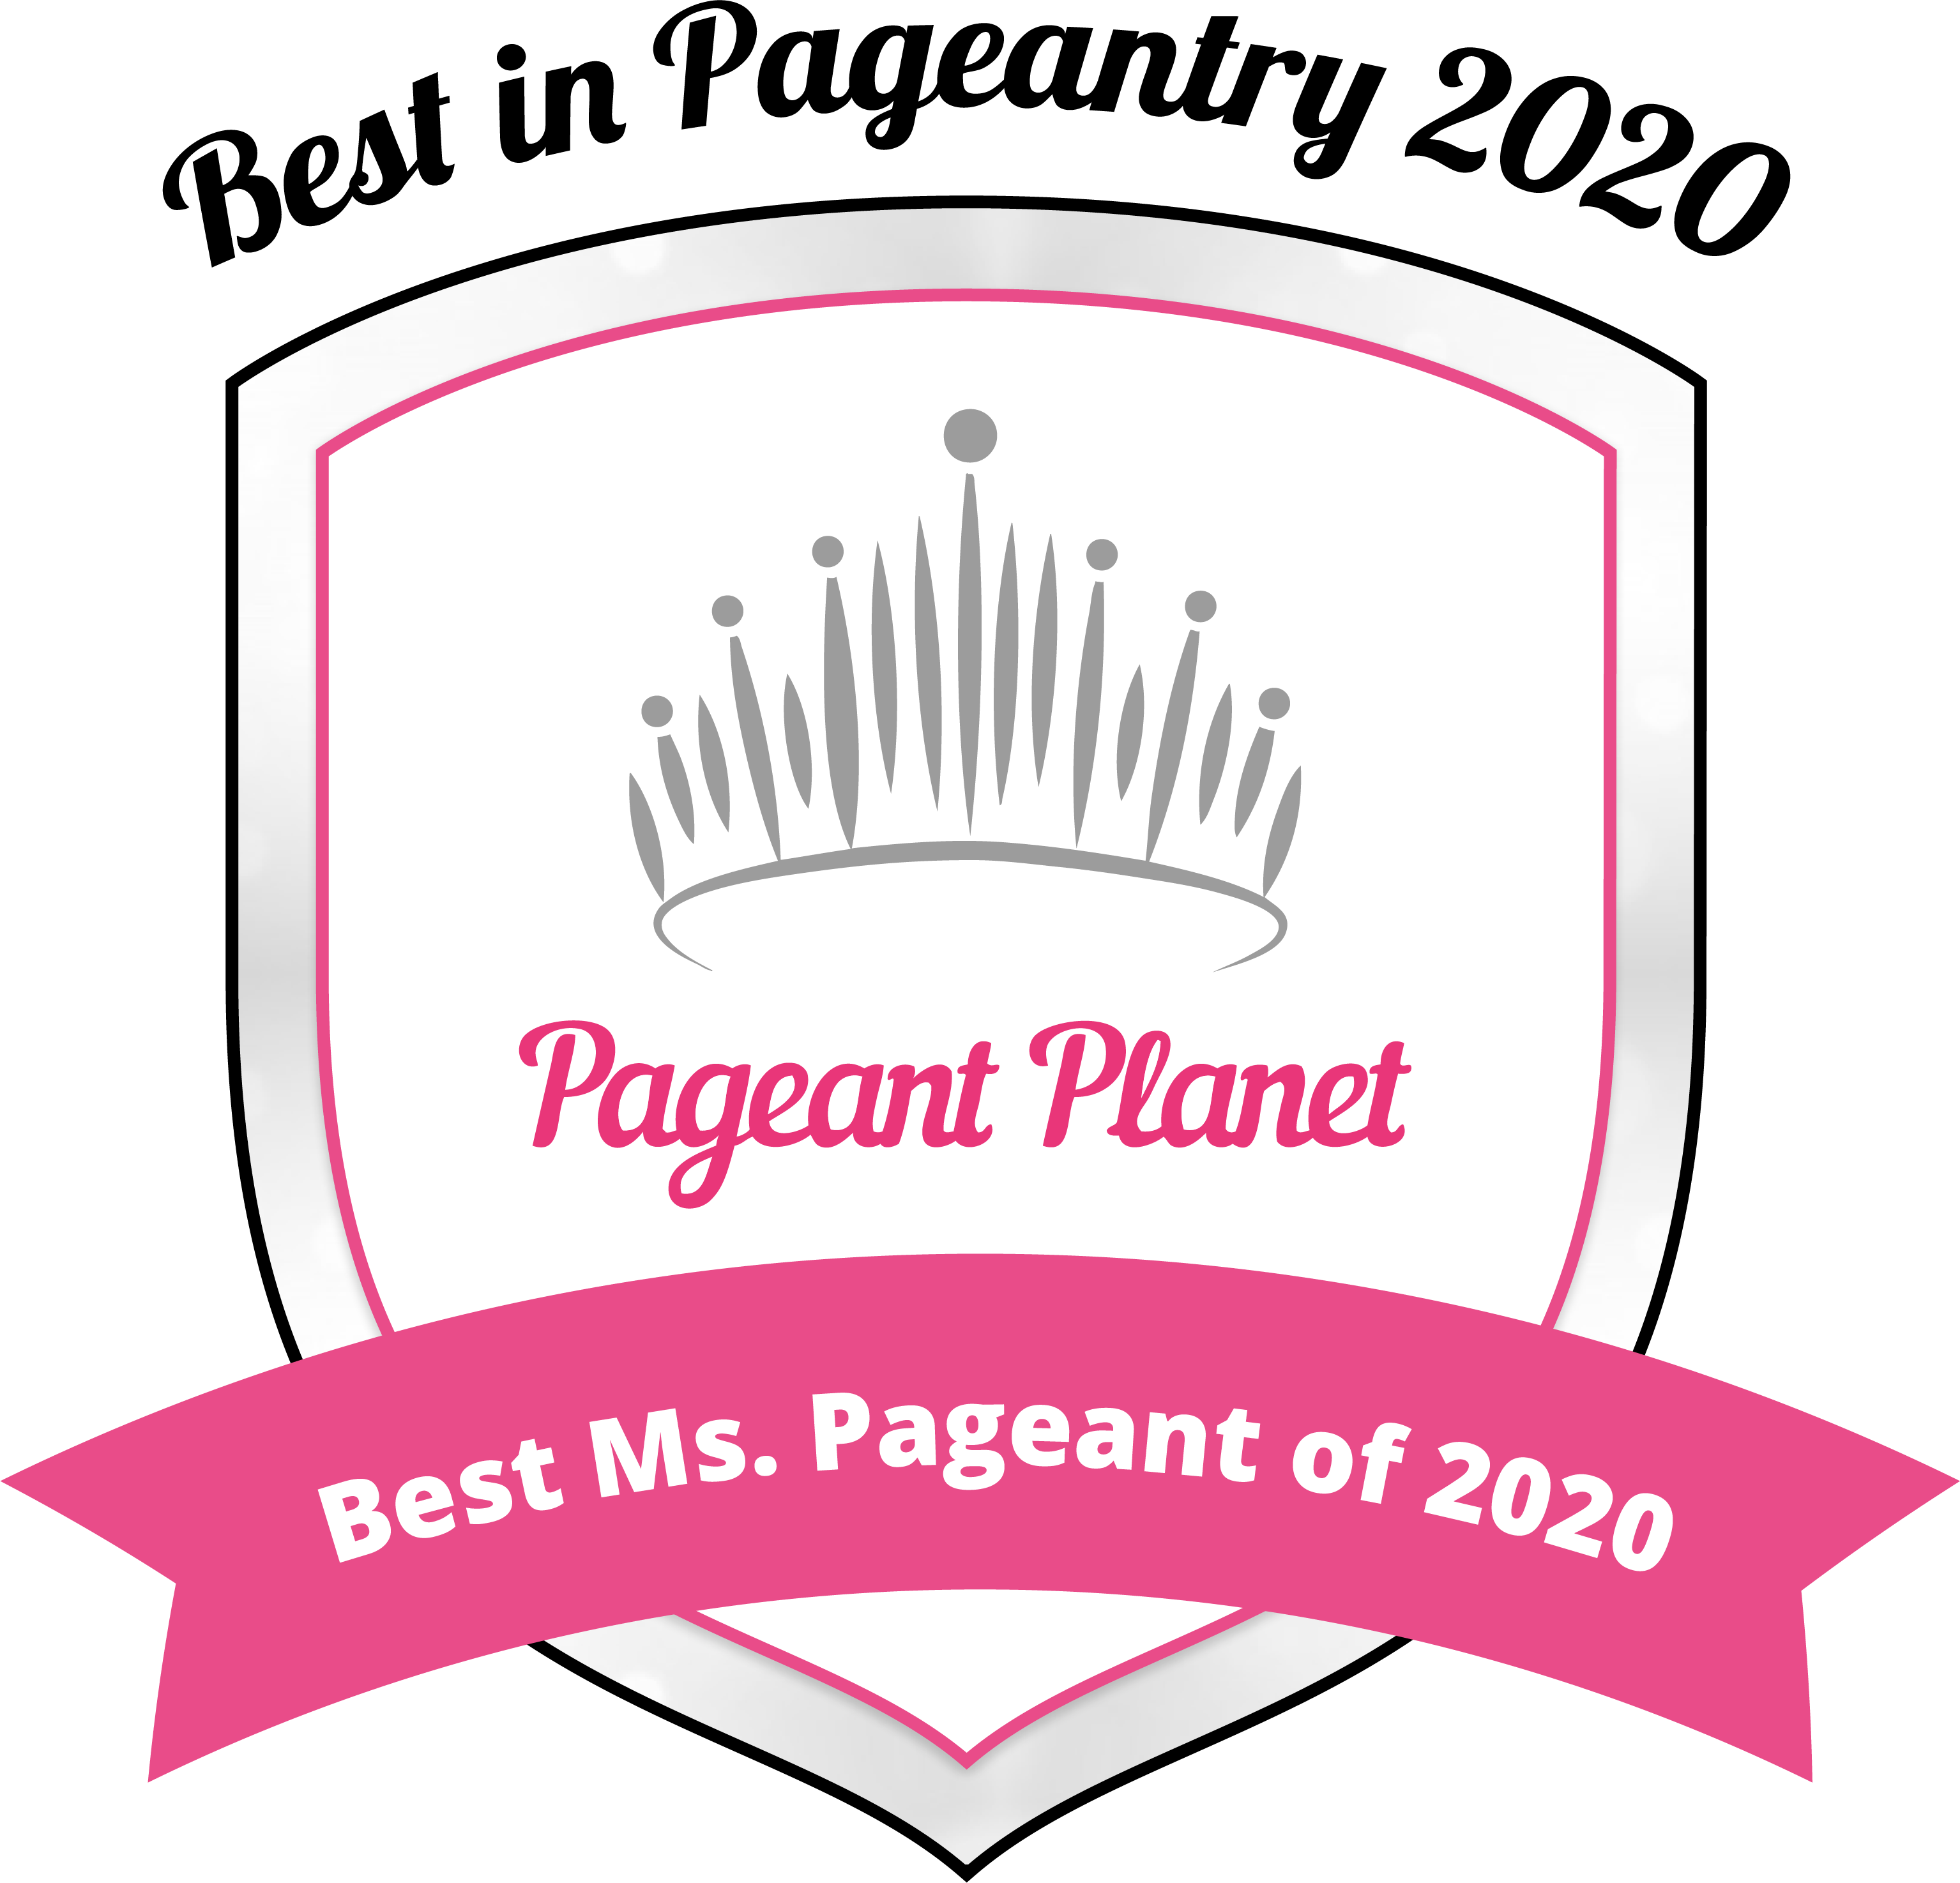 Best Ms. Pageant of 2020